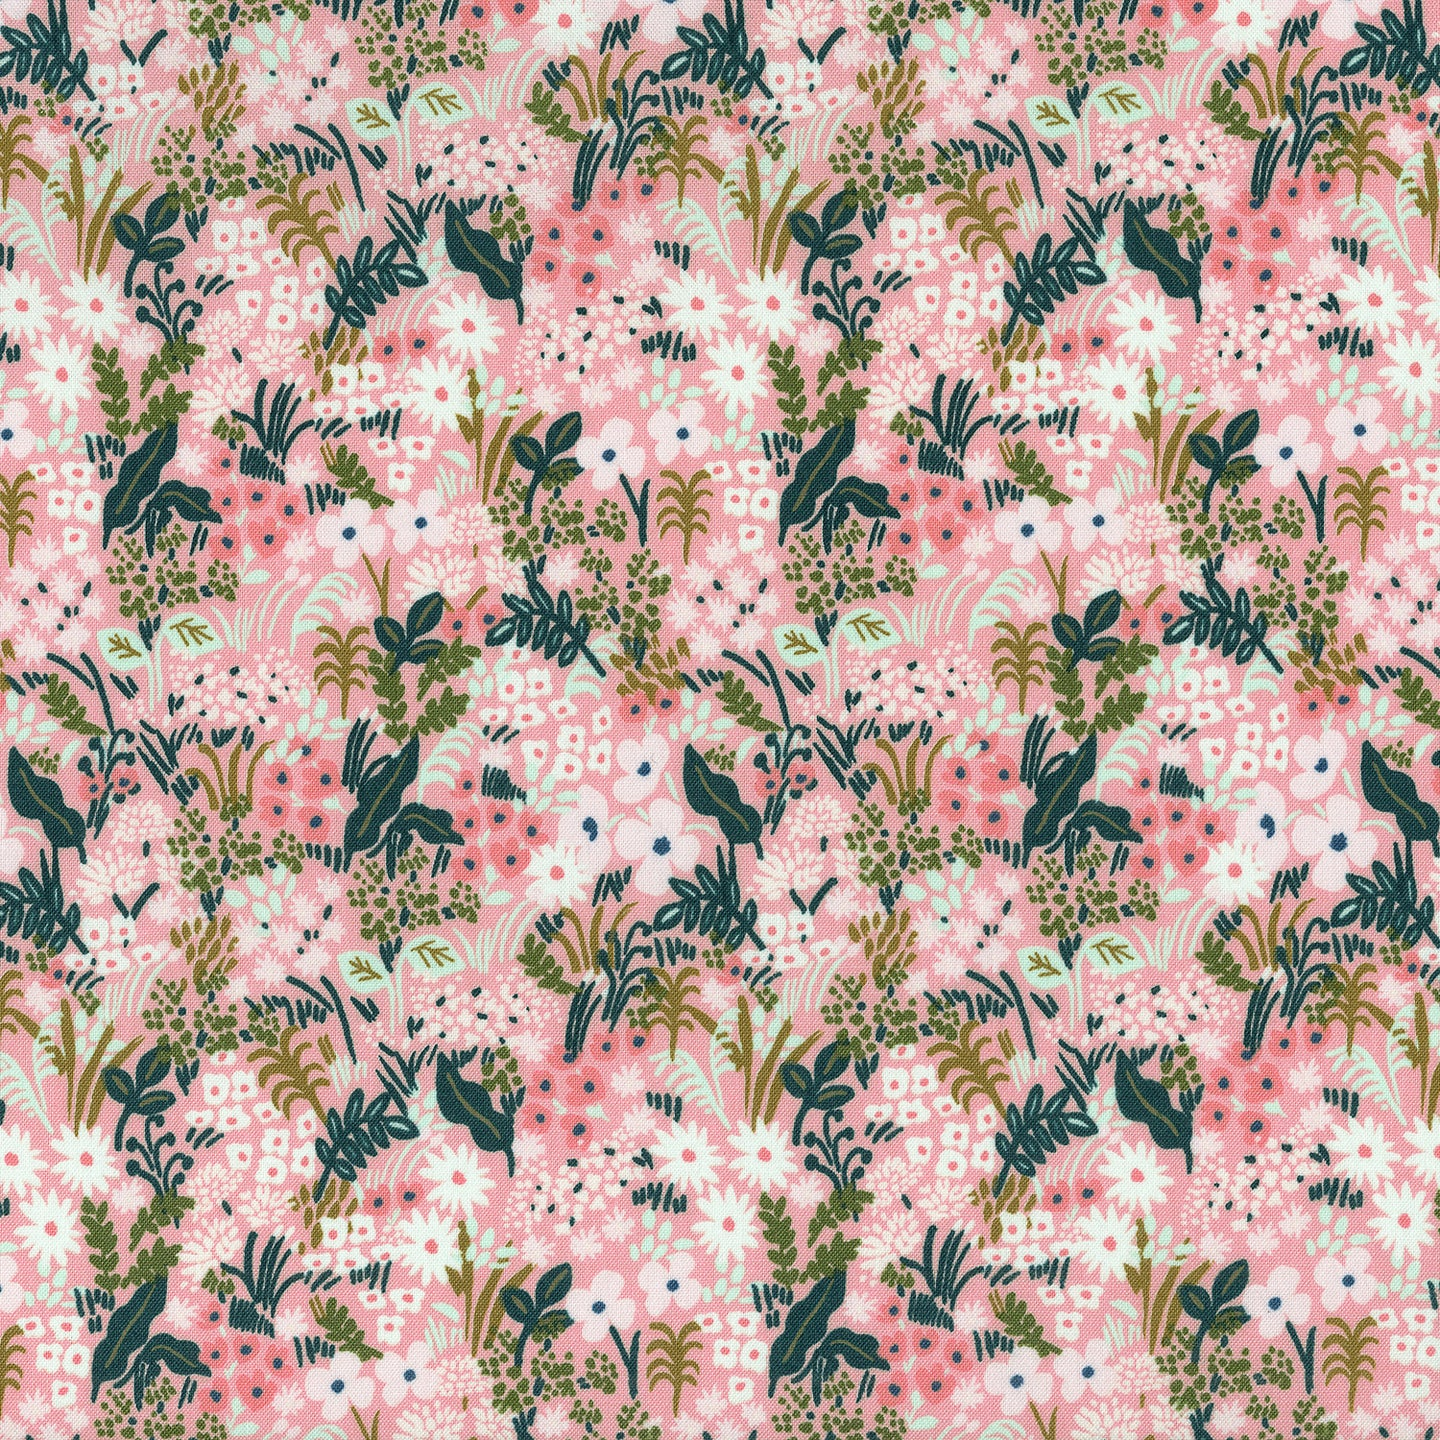 C+S Rifle Paper Co. English Garden Meadow - Pink Fabric